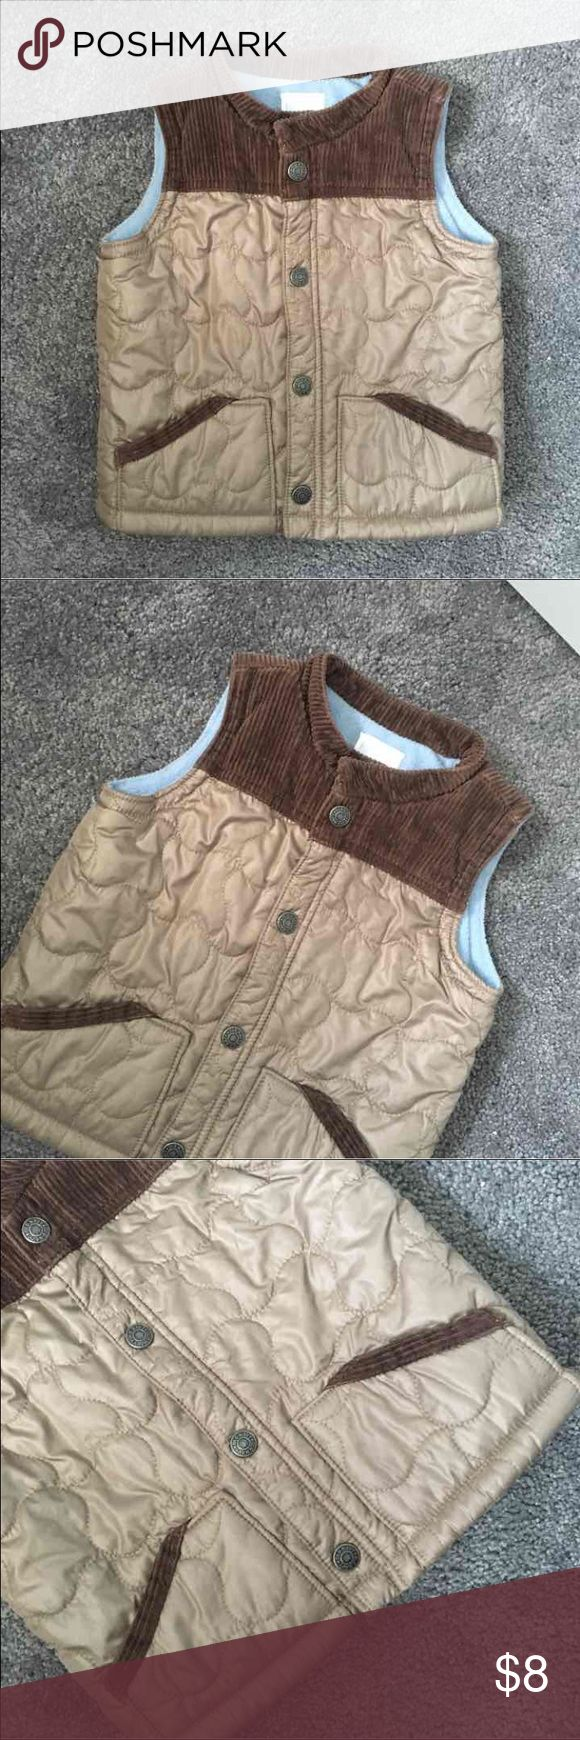 Old navy vest ! 18m boy Old navy vest toddler boy 18m great condition Old Navy Shirts & Tops Sweatshirts & Hoodies